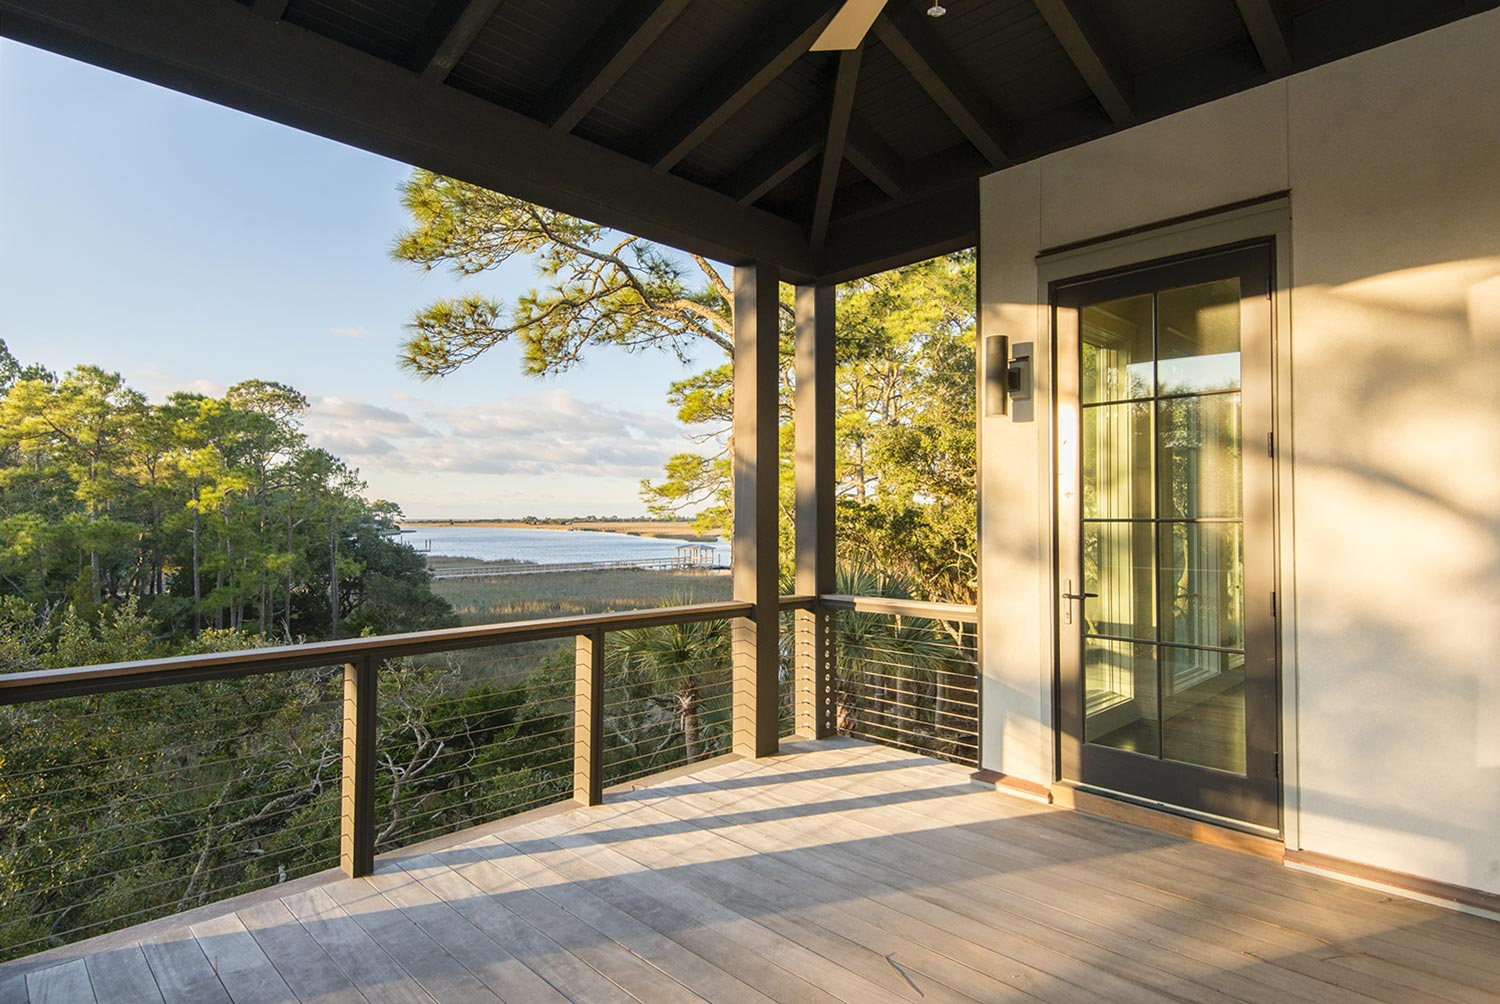 Riverside view from a covered deck at The Pointe on Kiawah Island